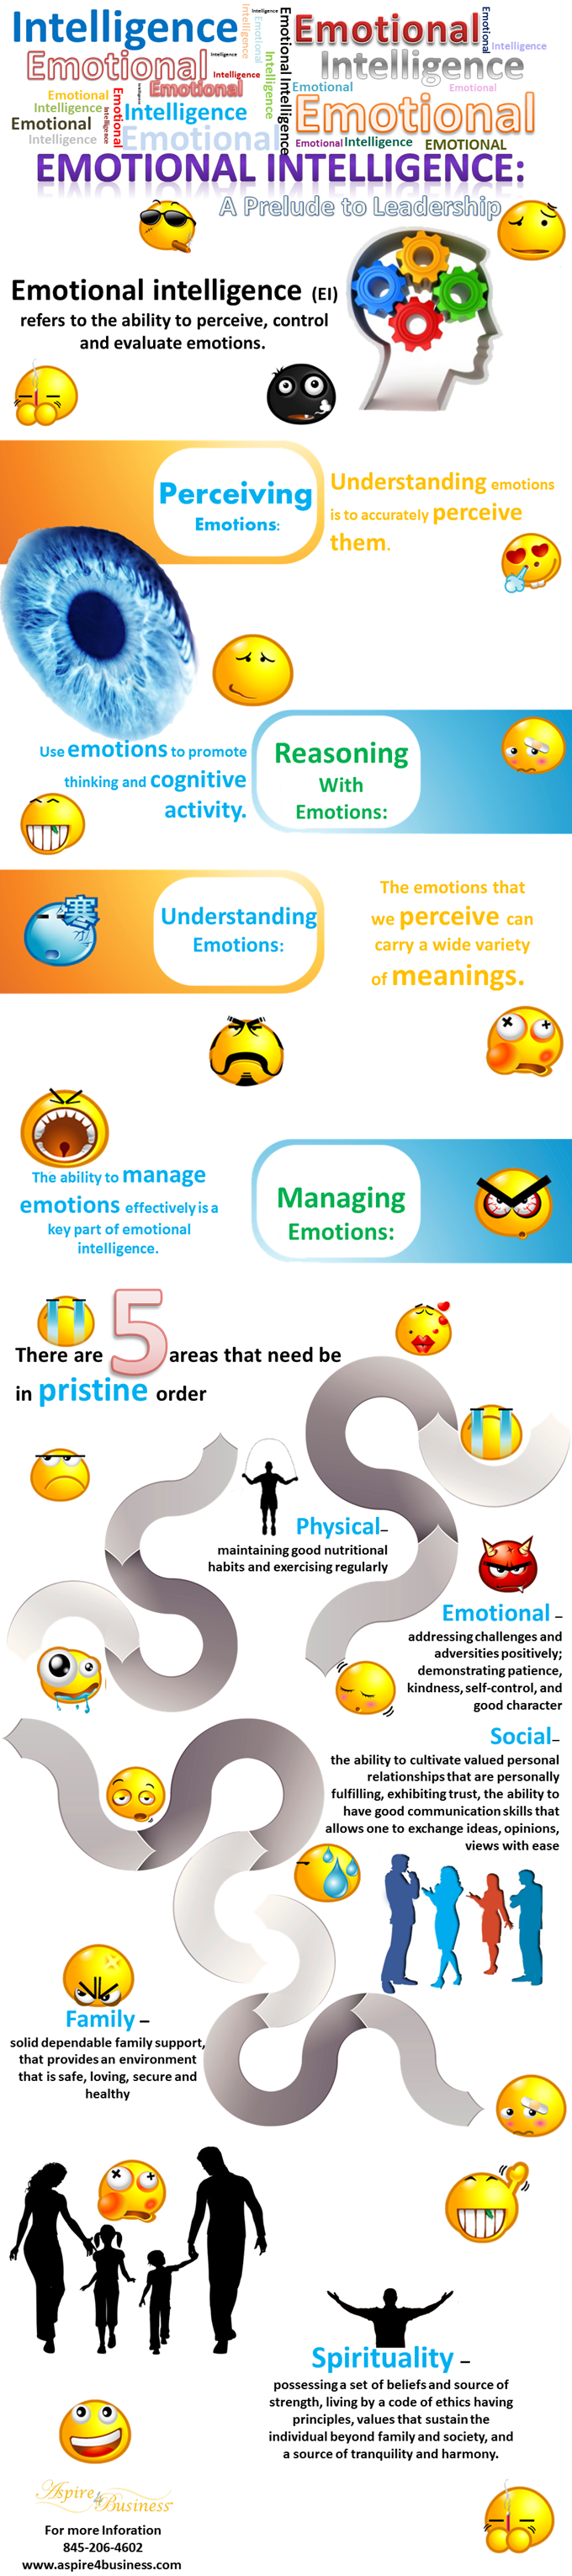 worksheet Emotional Intelligence Worksheets 10 images about emotional intelligence on pinterest exploring communication skills and feelings words